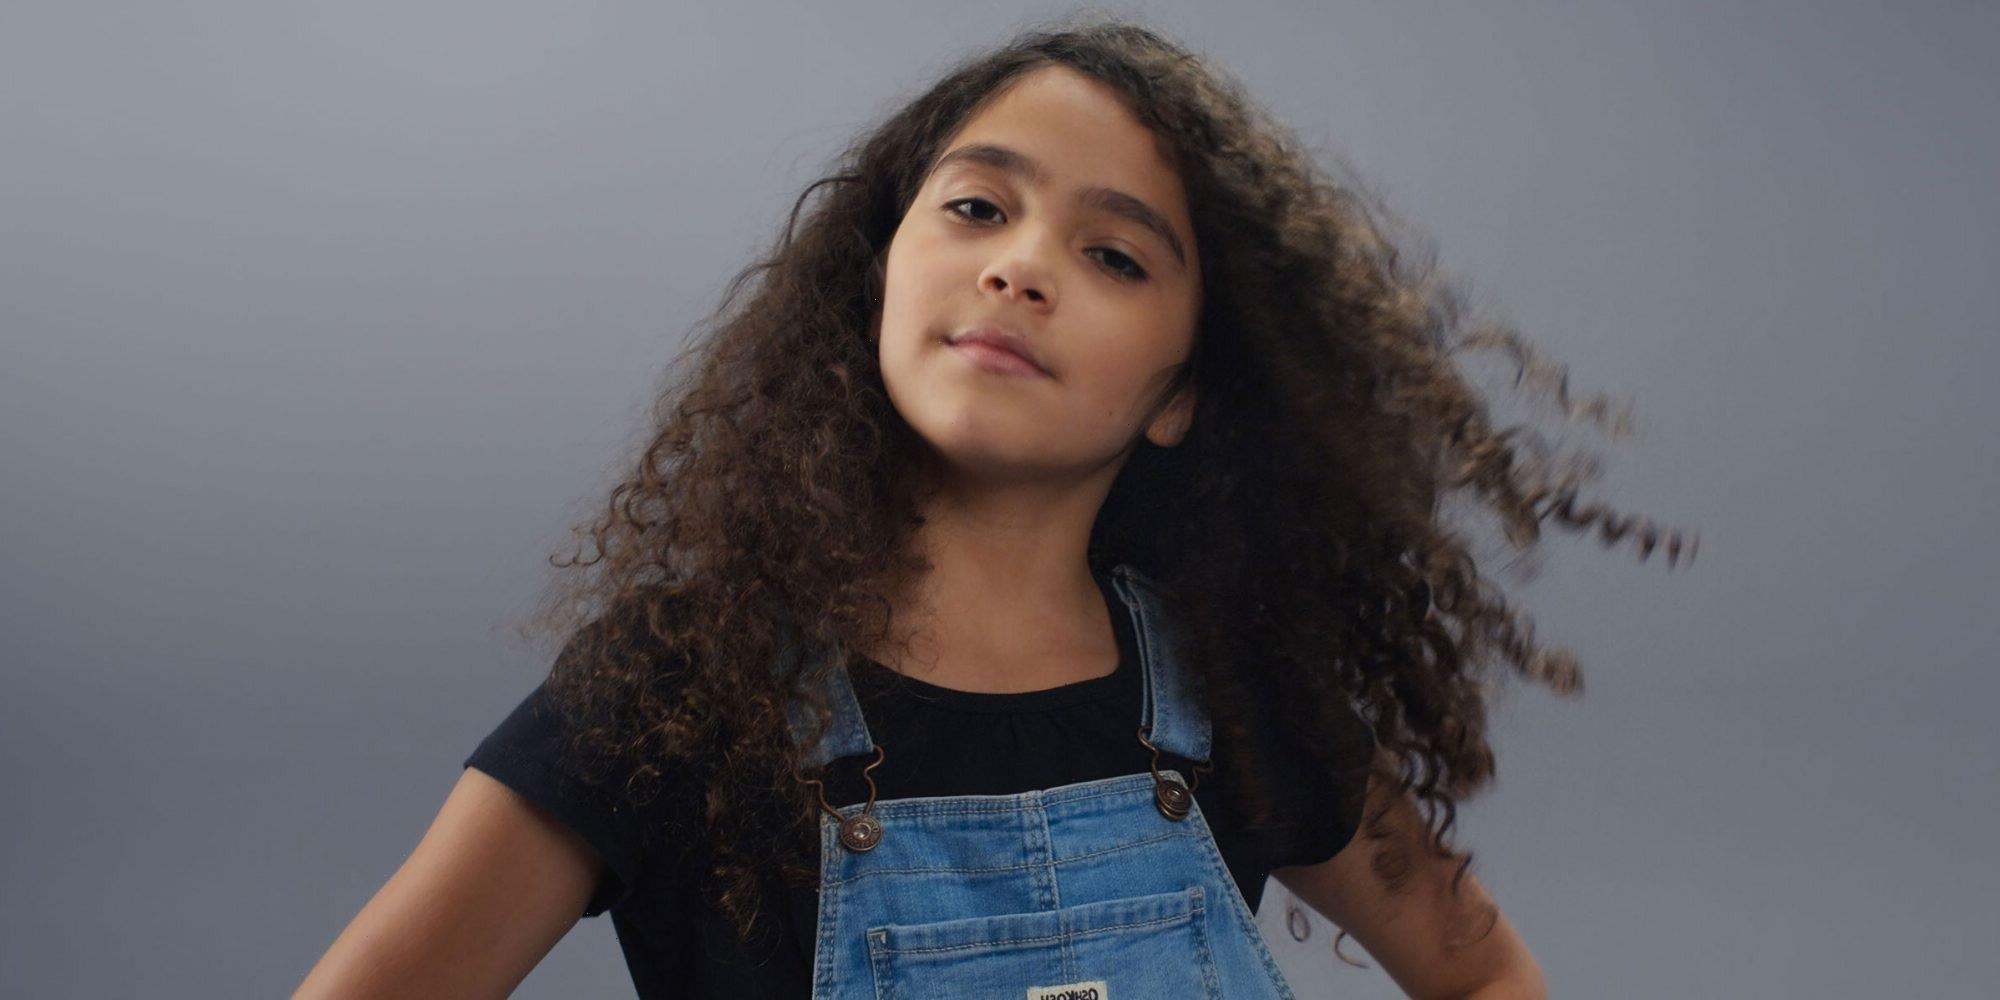 Mariah Carey's 10-Year-Old Daughter Just Made Her Modeling Debut